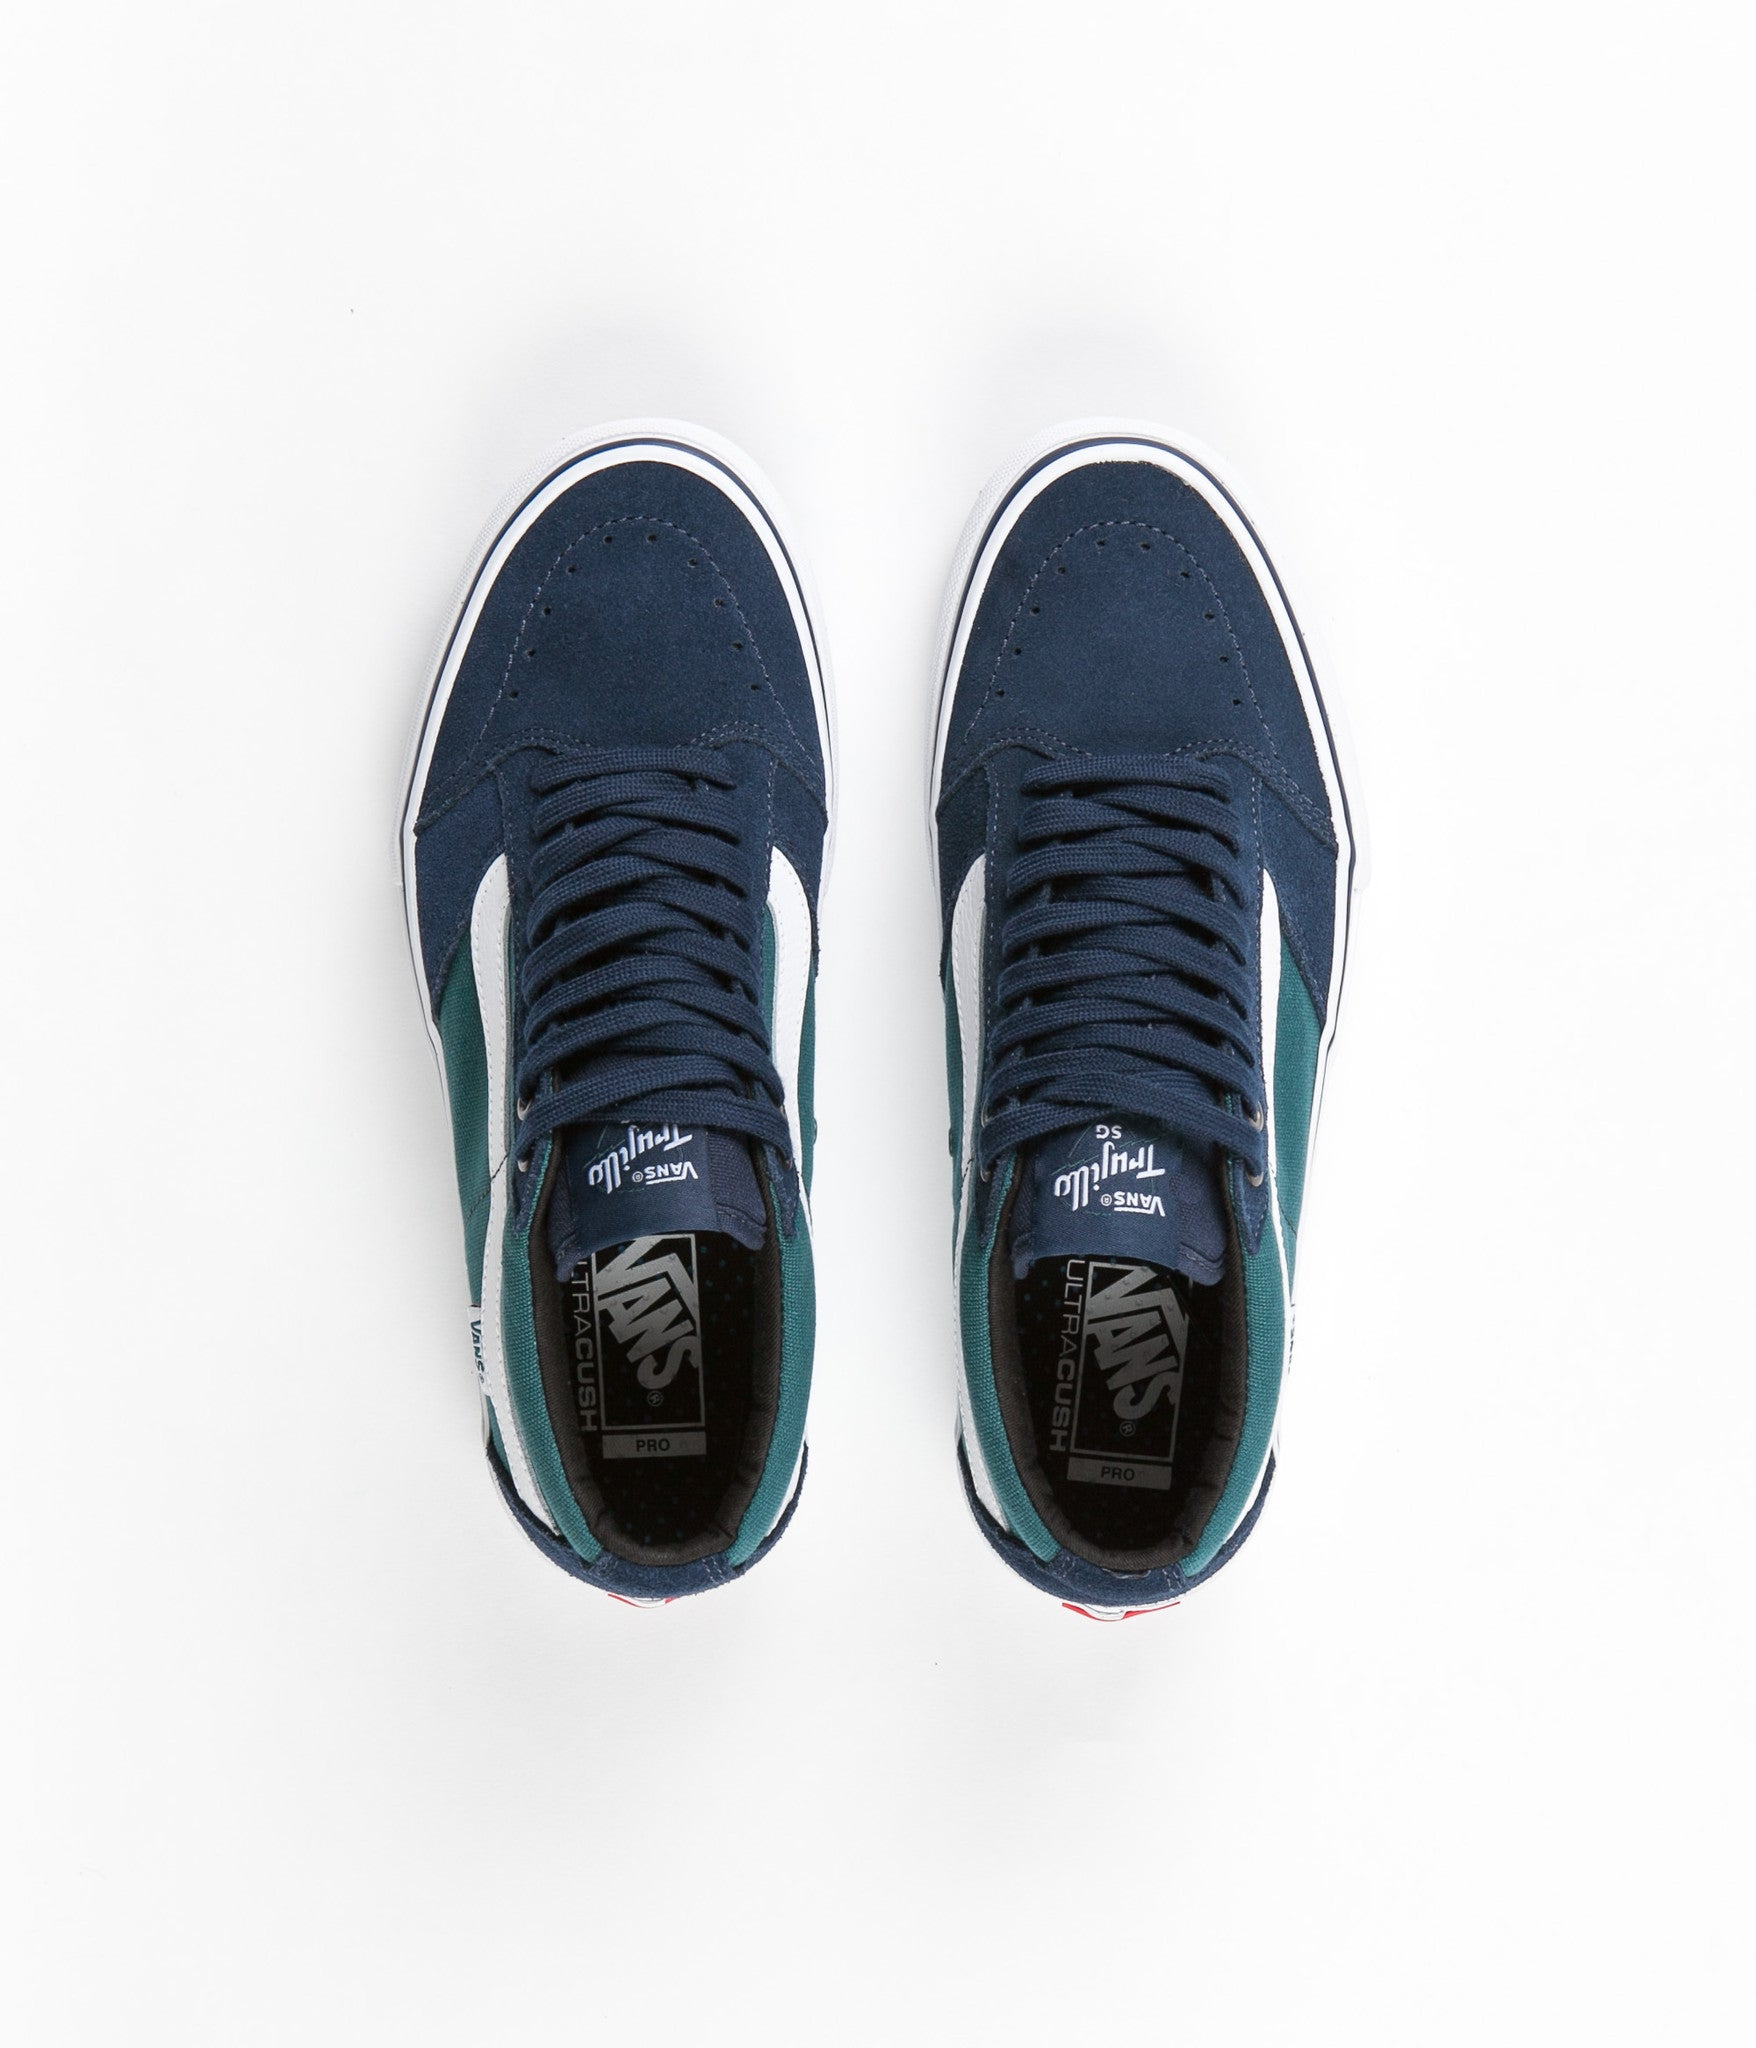 8f0db050d1 Vans TNT SG Shoes - Dress Blues   Deep Teal ...